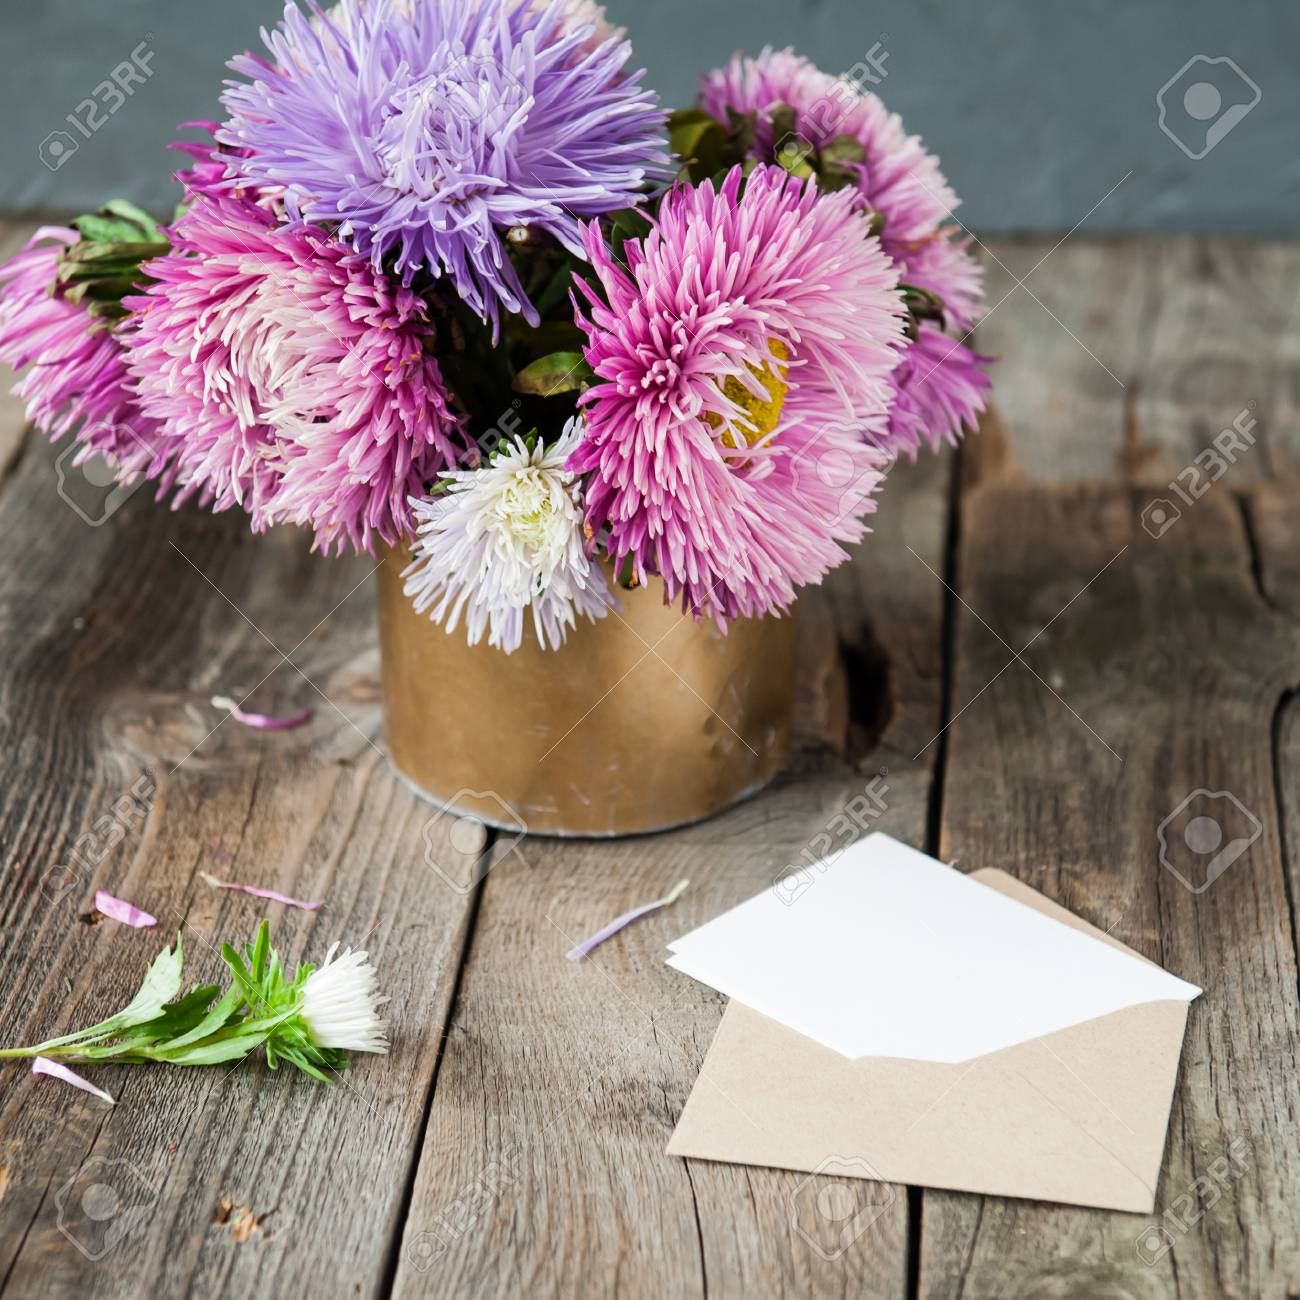 Multicolor Aster Flowers Bouquet Blank White Greeting Card And